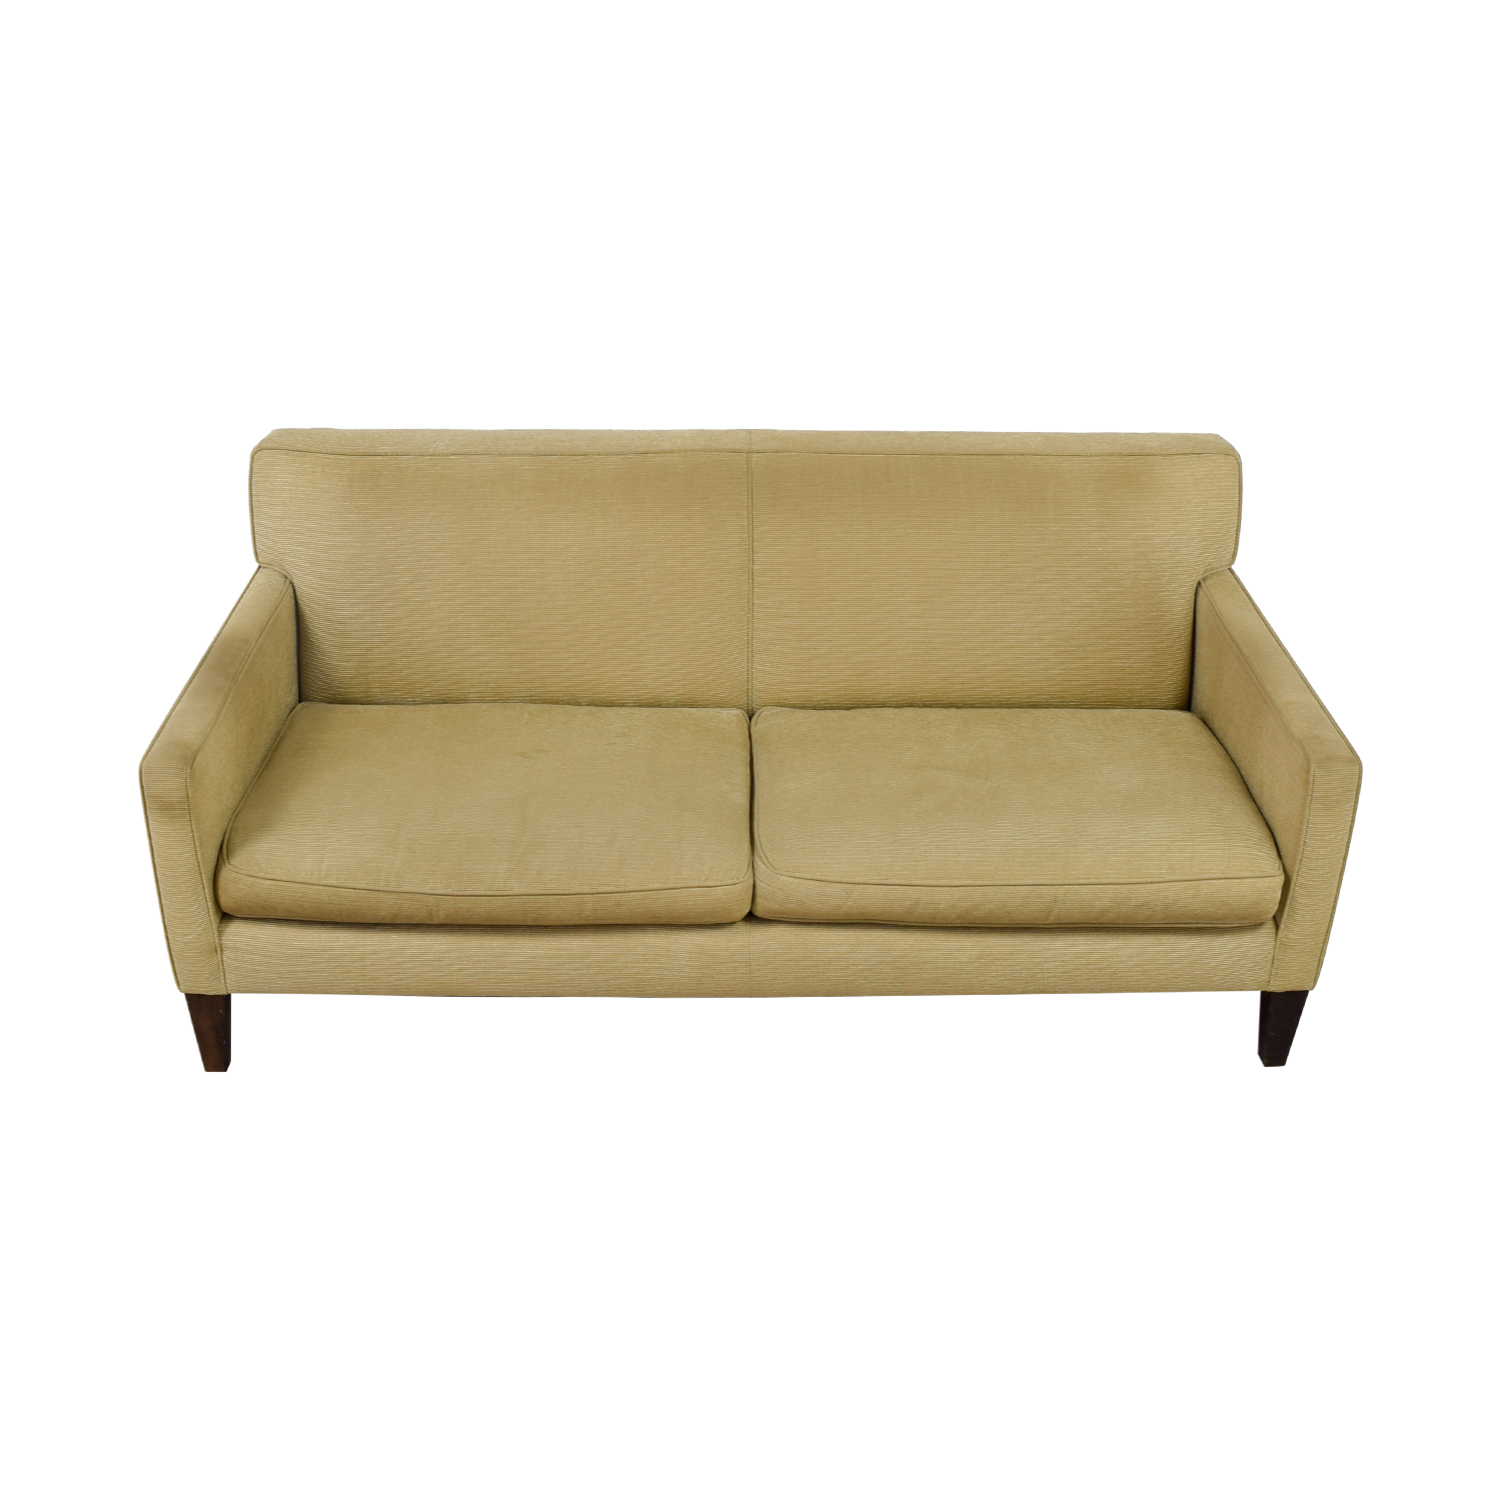 Crate & Barrel Crate & Barrel Beige Sofa on sale